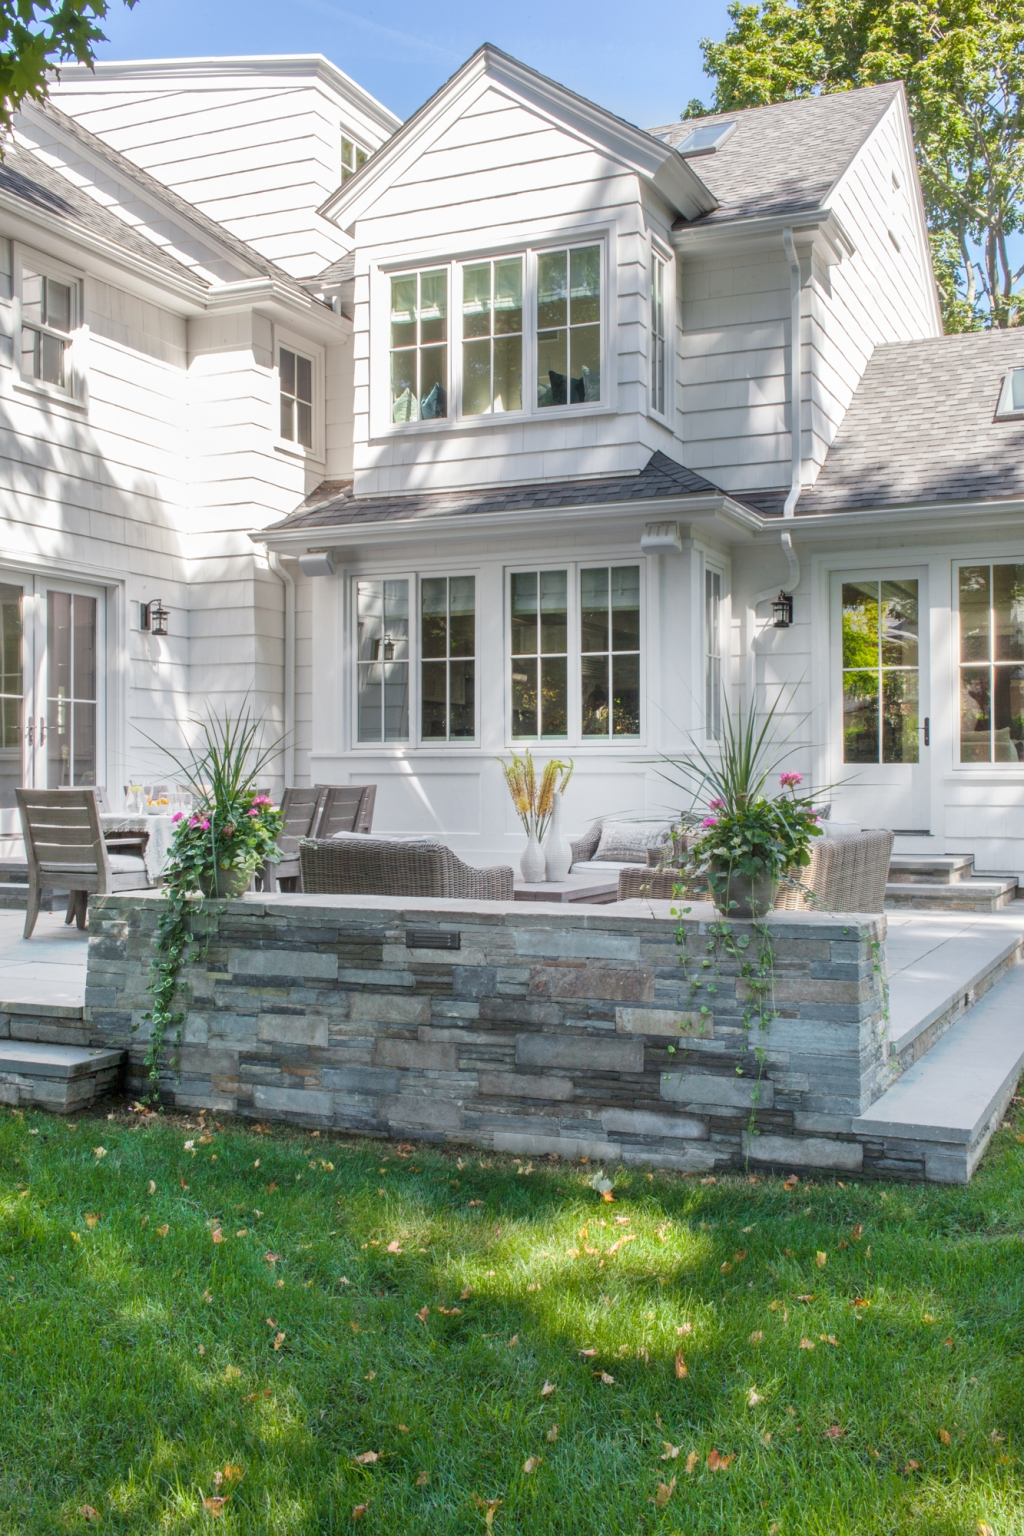 100 new homes charles hilton architects sauganash glen for Outdoor furniture york pa